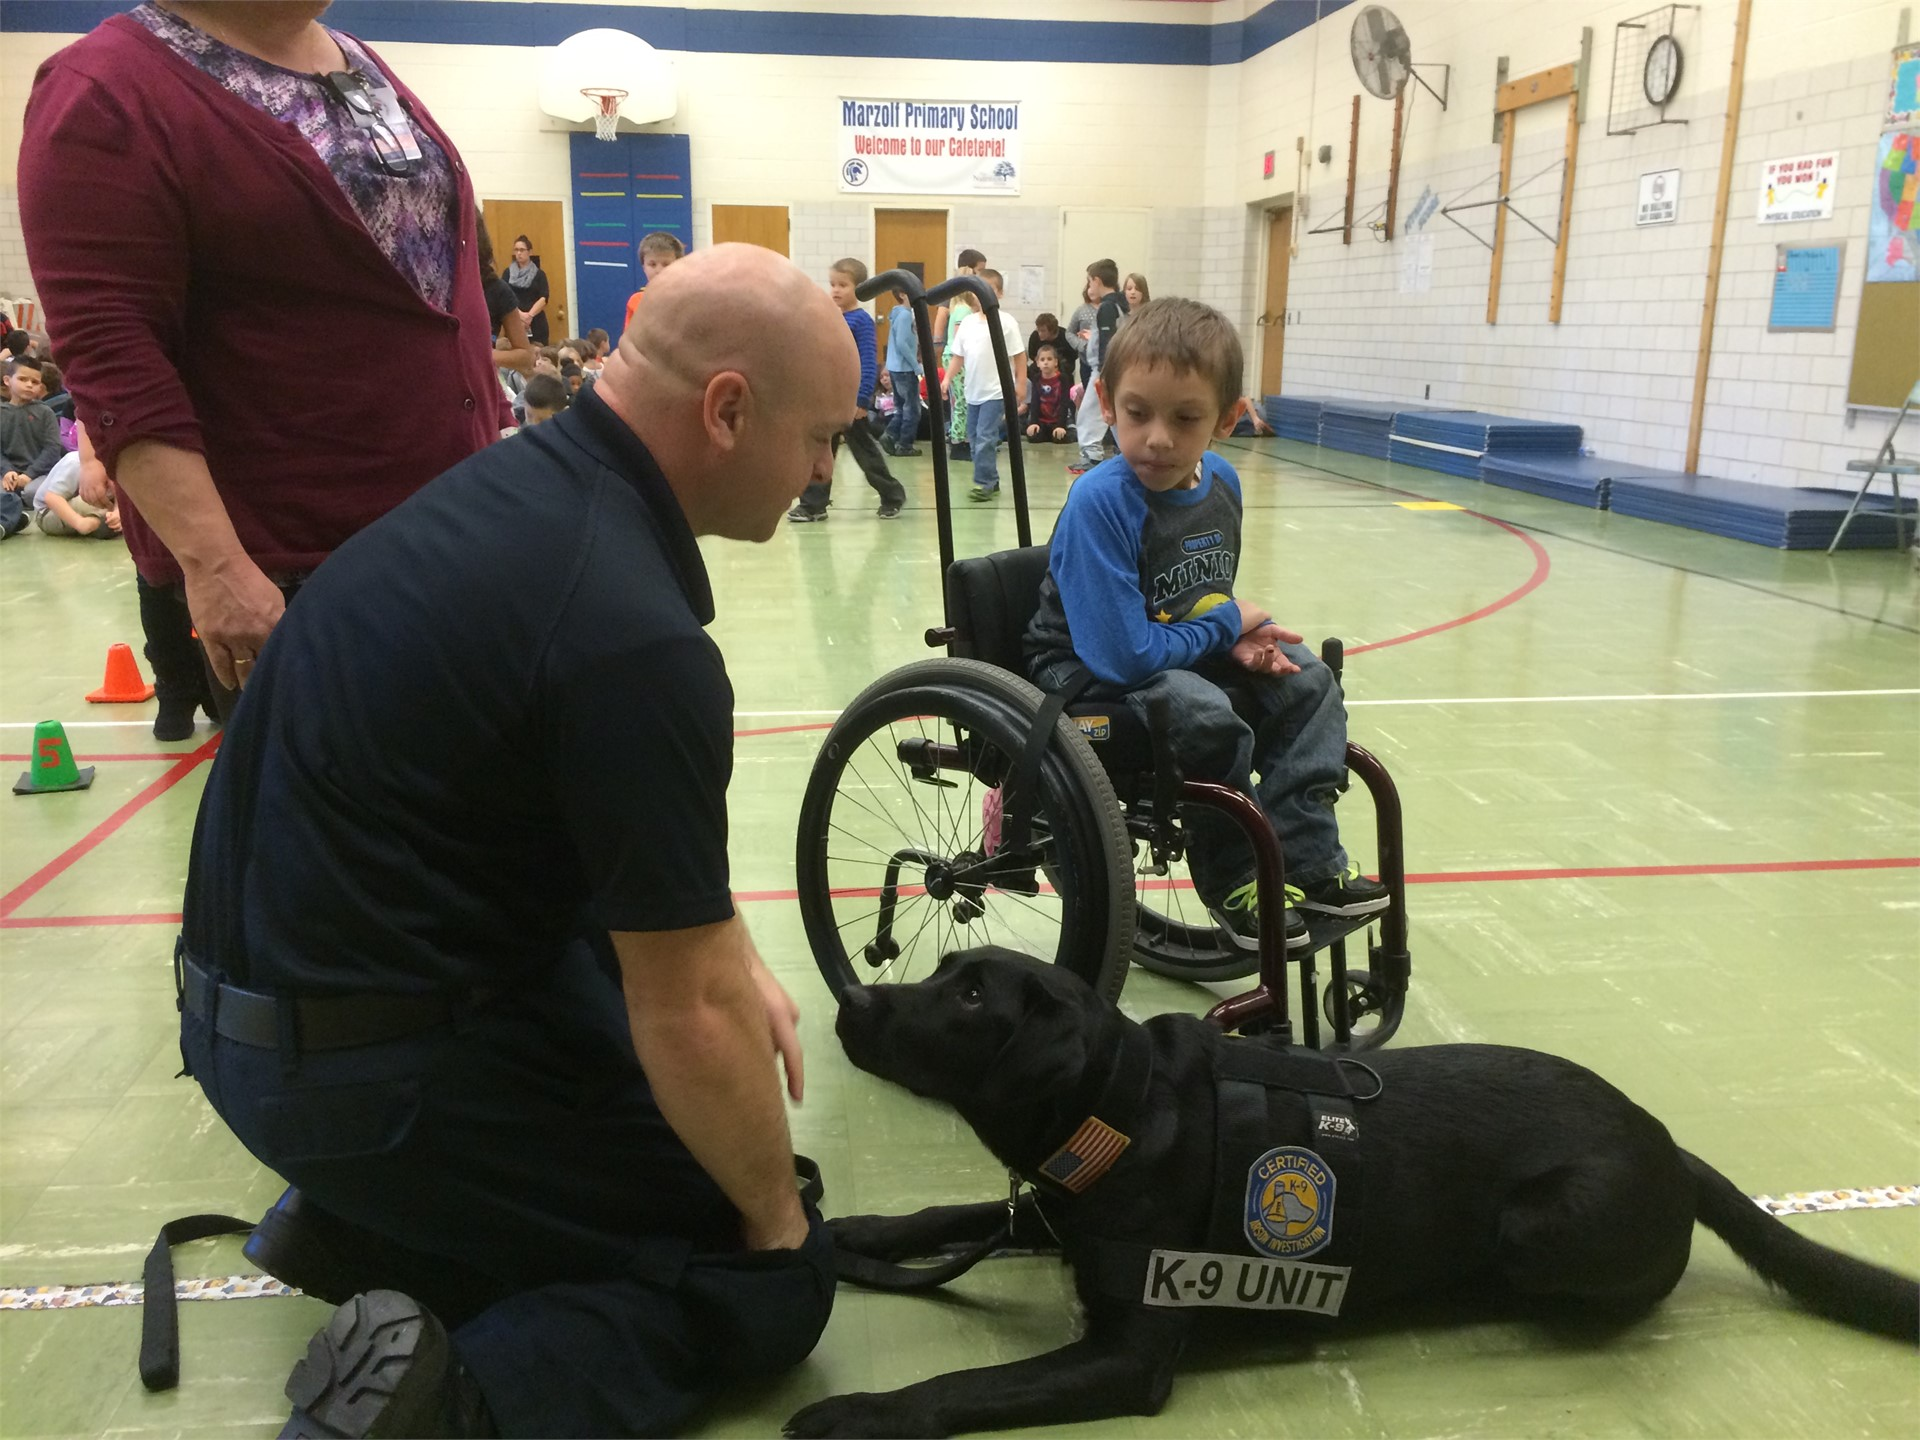 Police Dog visits Marzolf for Community Safety Program